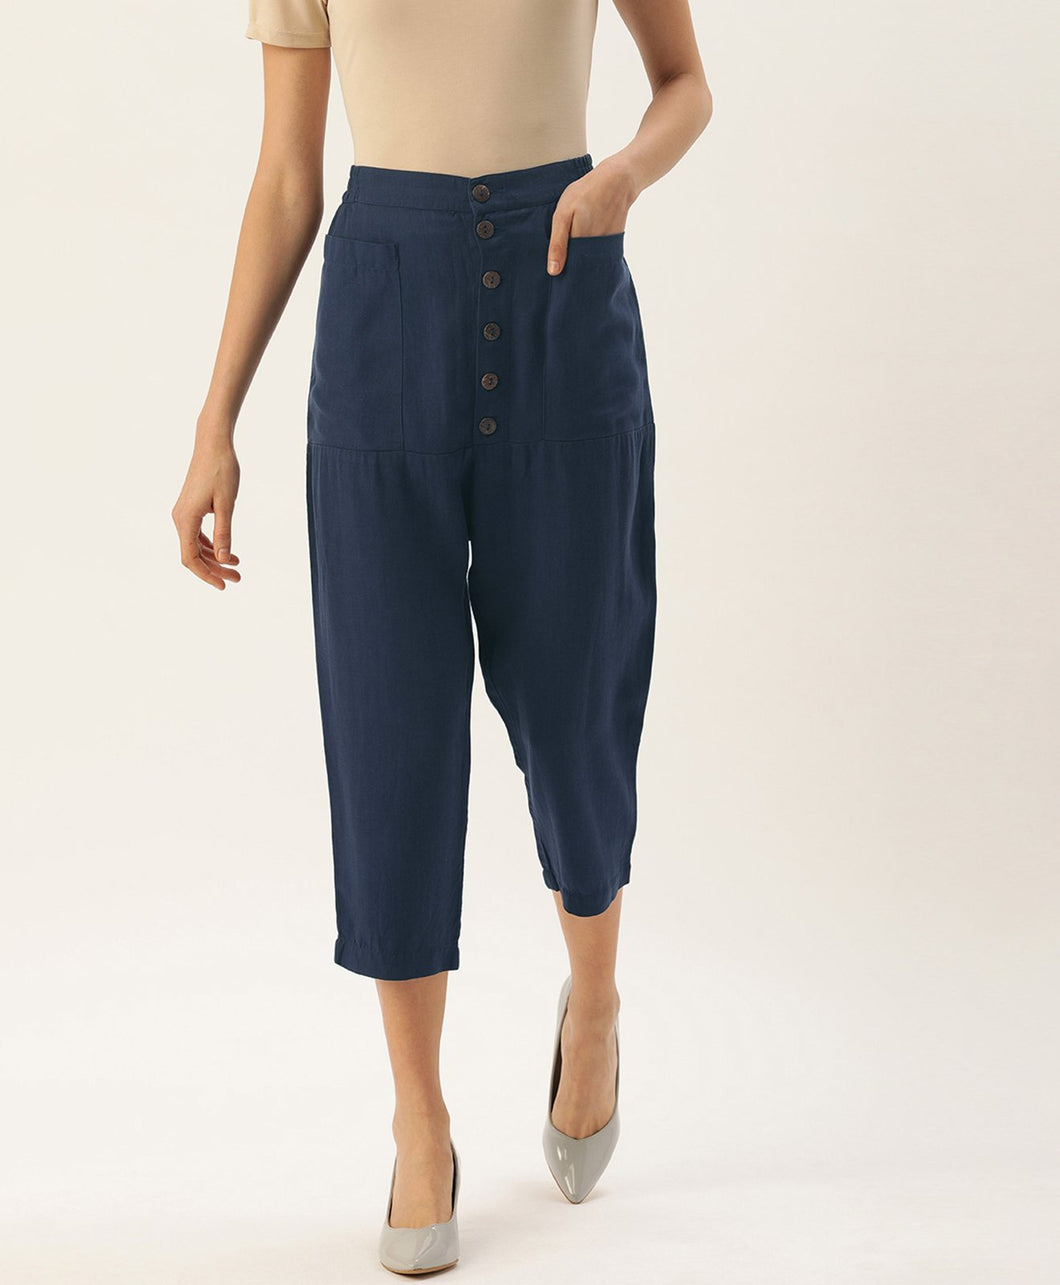 Navy Blue High Waist Casual Pants